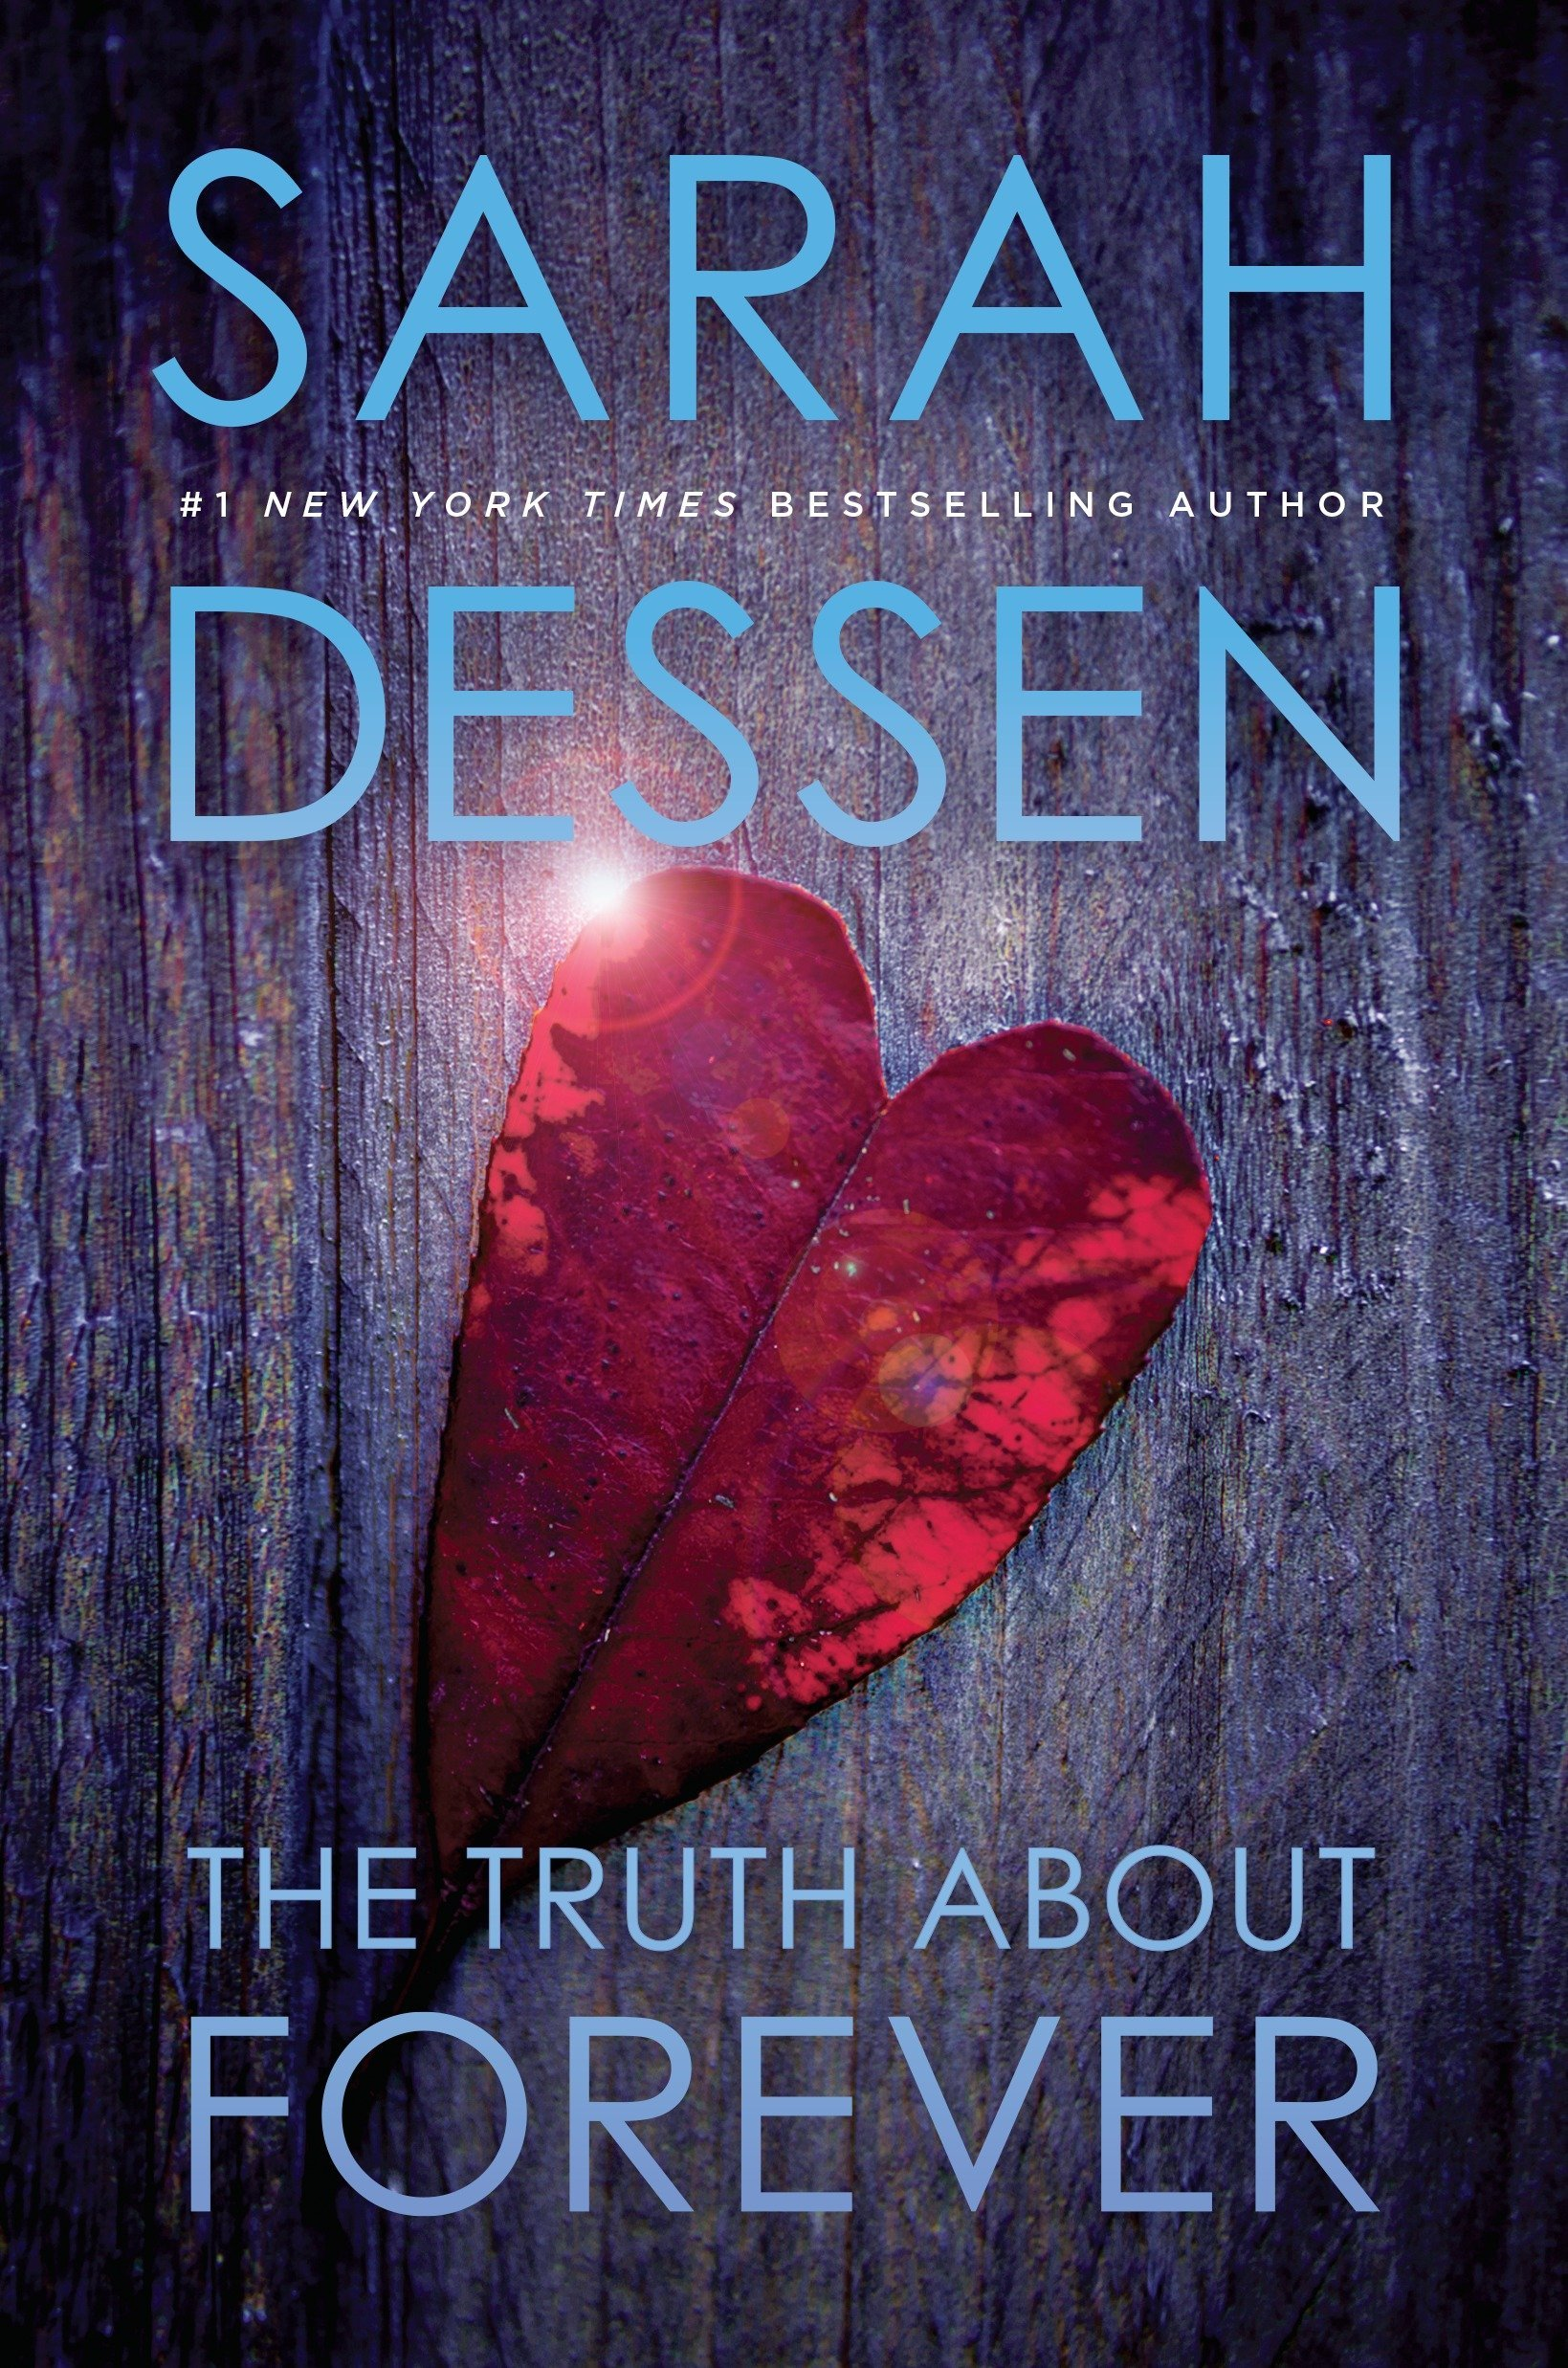 Amazon.com: The Truth About Forever (8601420085121): Dessen, Sarah: Books